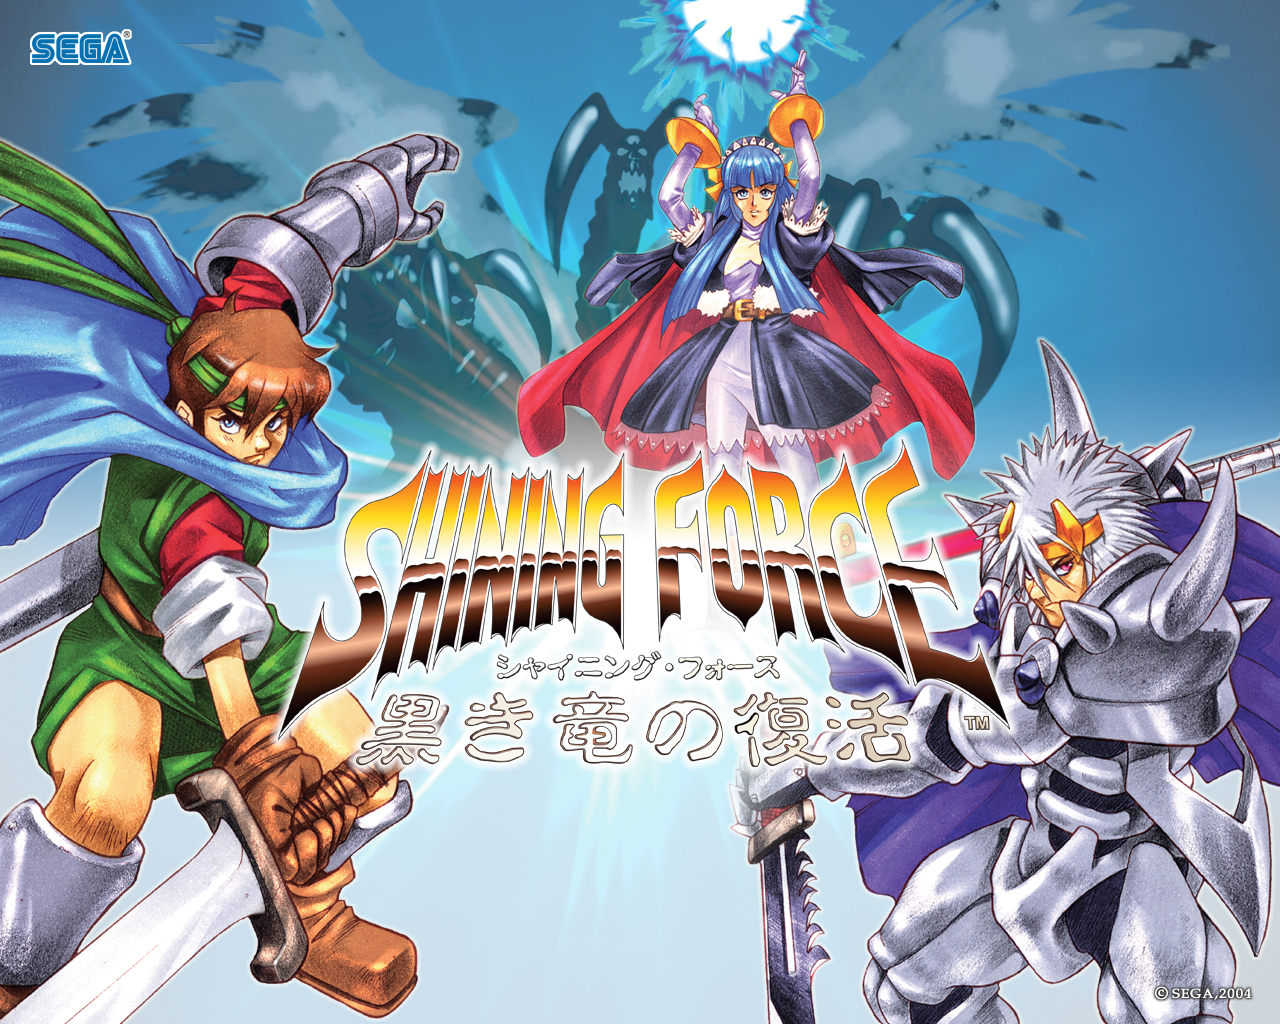 Shining Force Review The Vault Publication